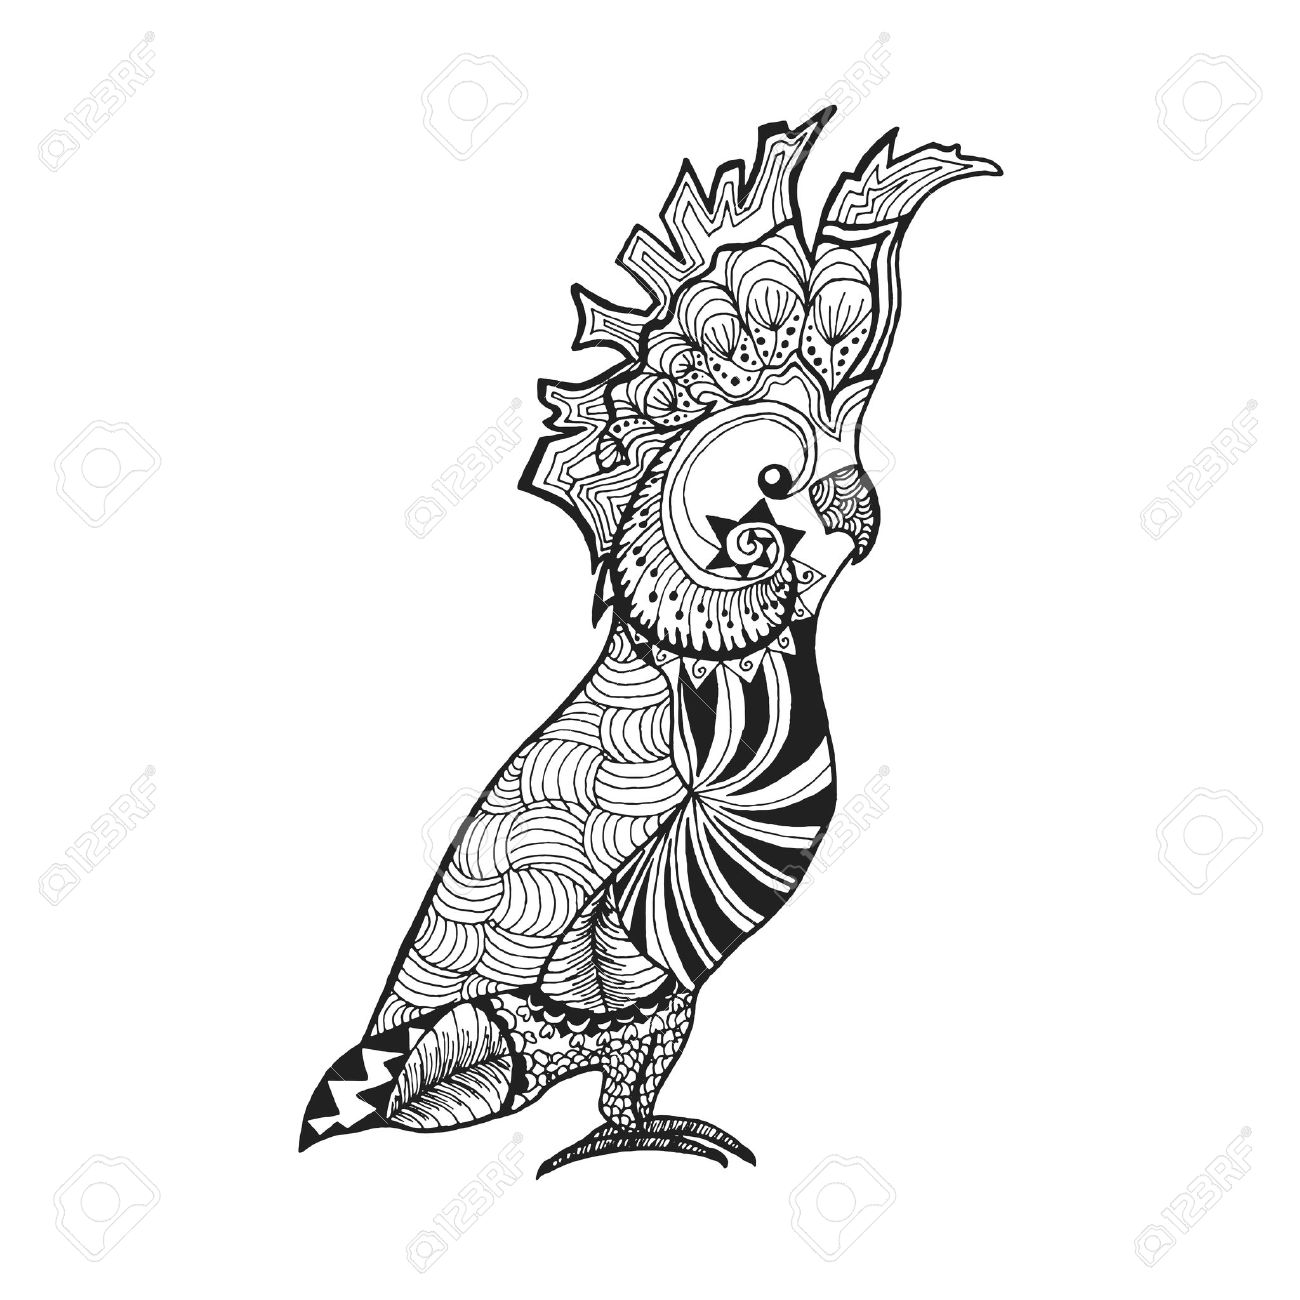 1300x1300 Bird Images Clip Art Black And White